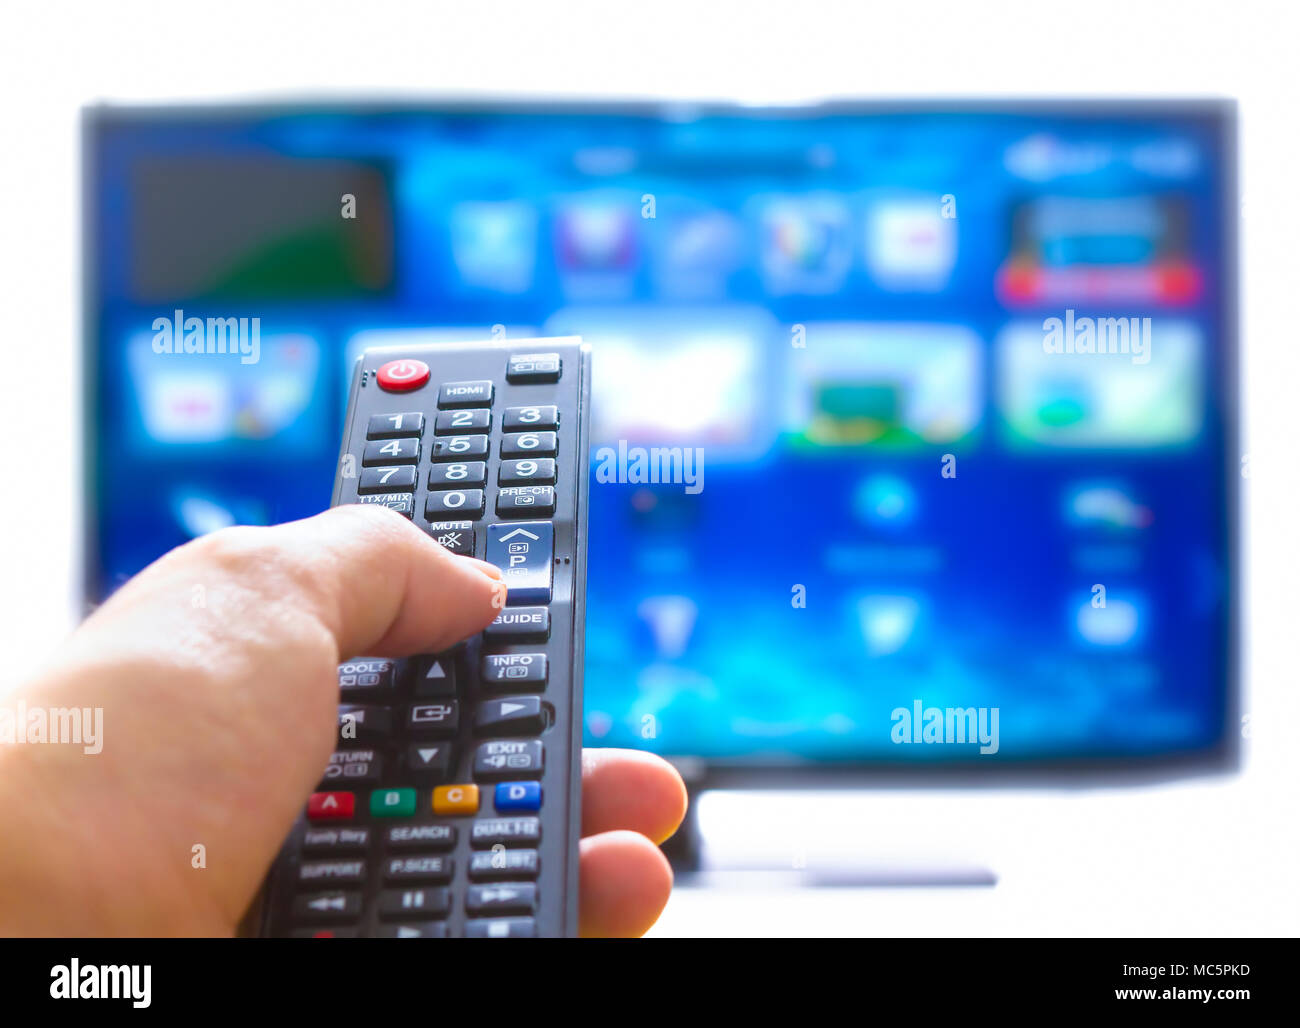 Hand pressing on remote control and changes channels thumb